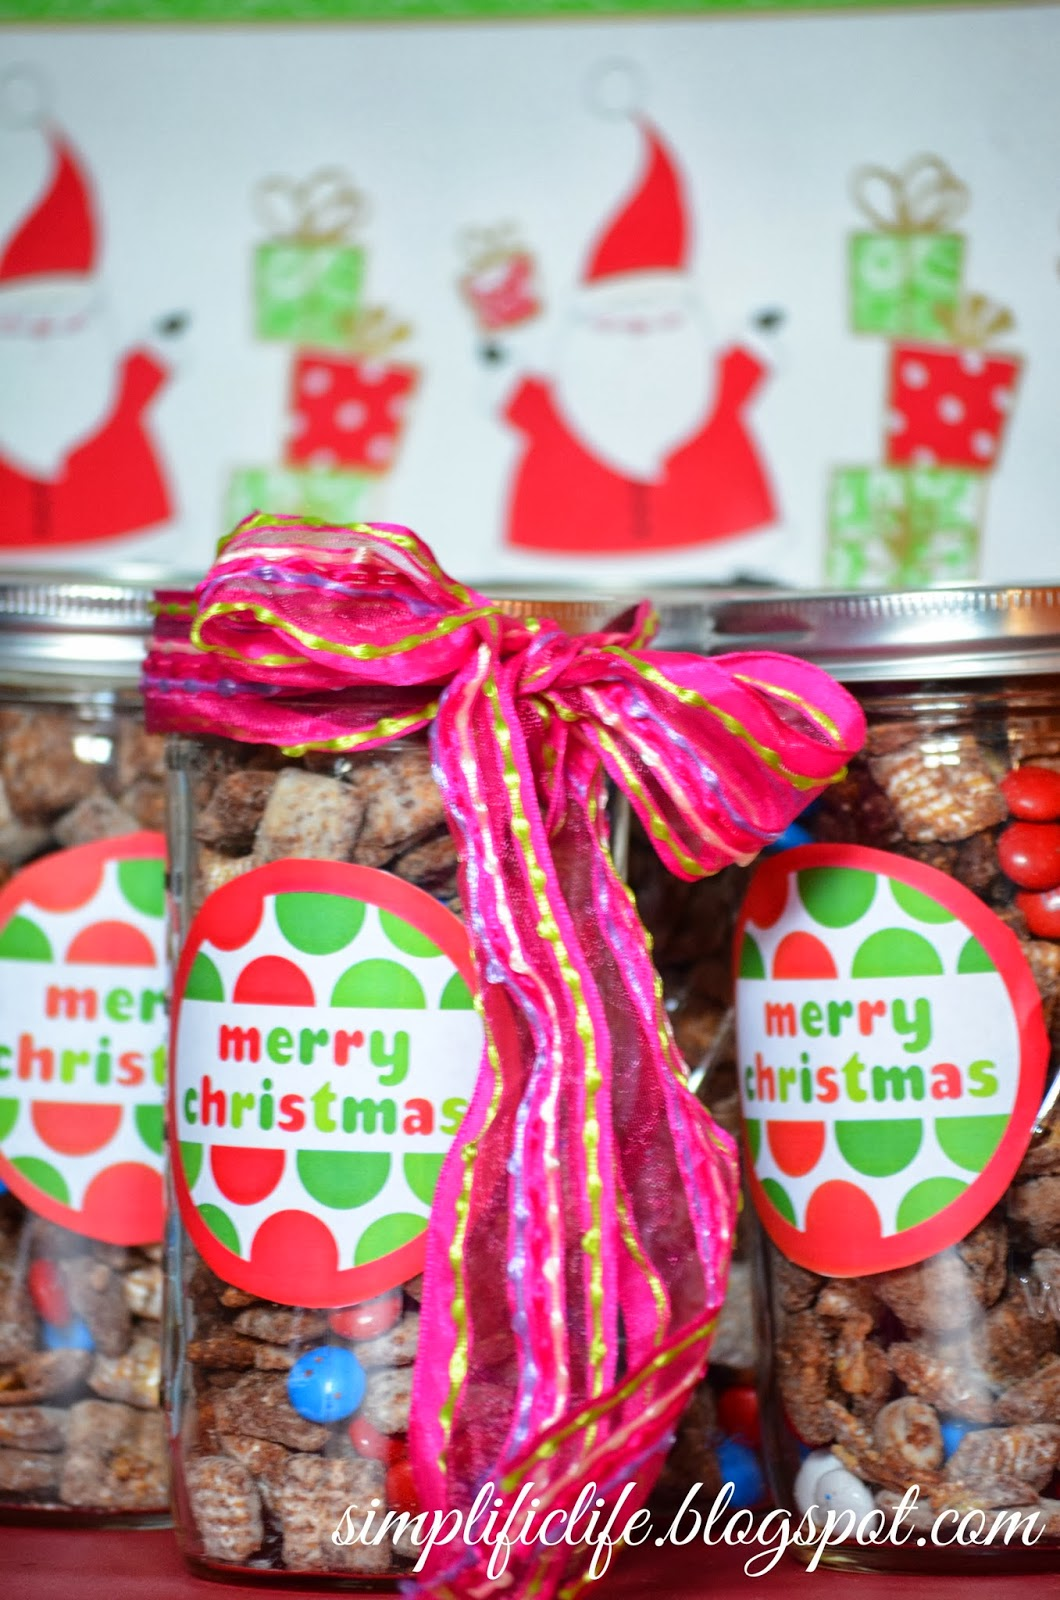 mason jars filled with puppy chow make the perfect gift for family friends coworkers or any sweet lover in your life its never too early to spread some - Christmas Puppy Chow